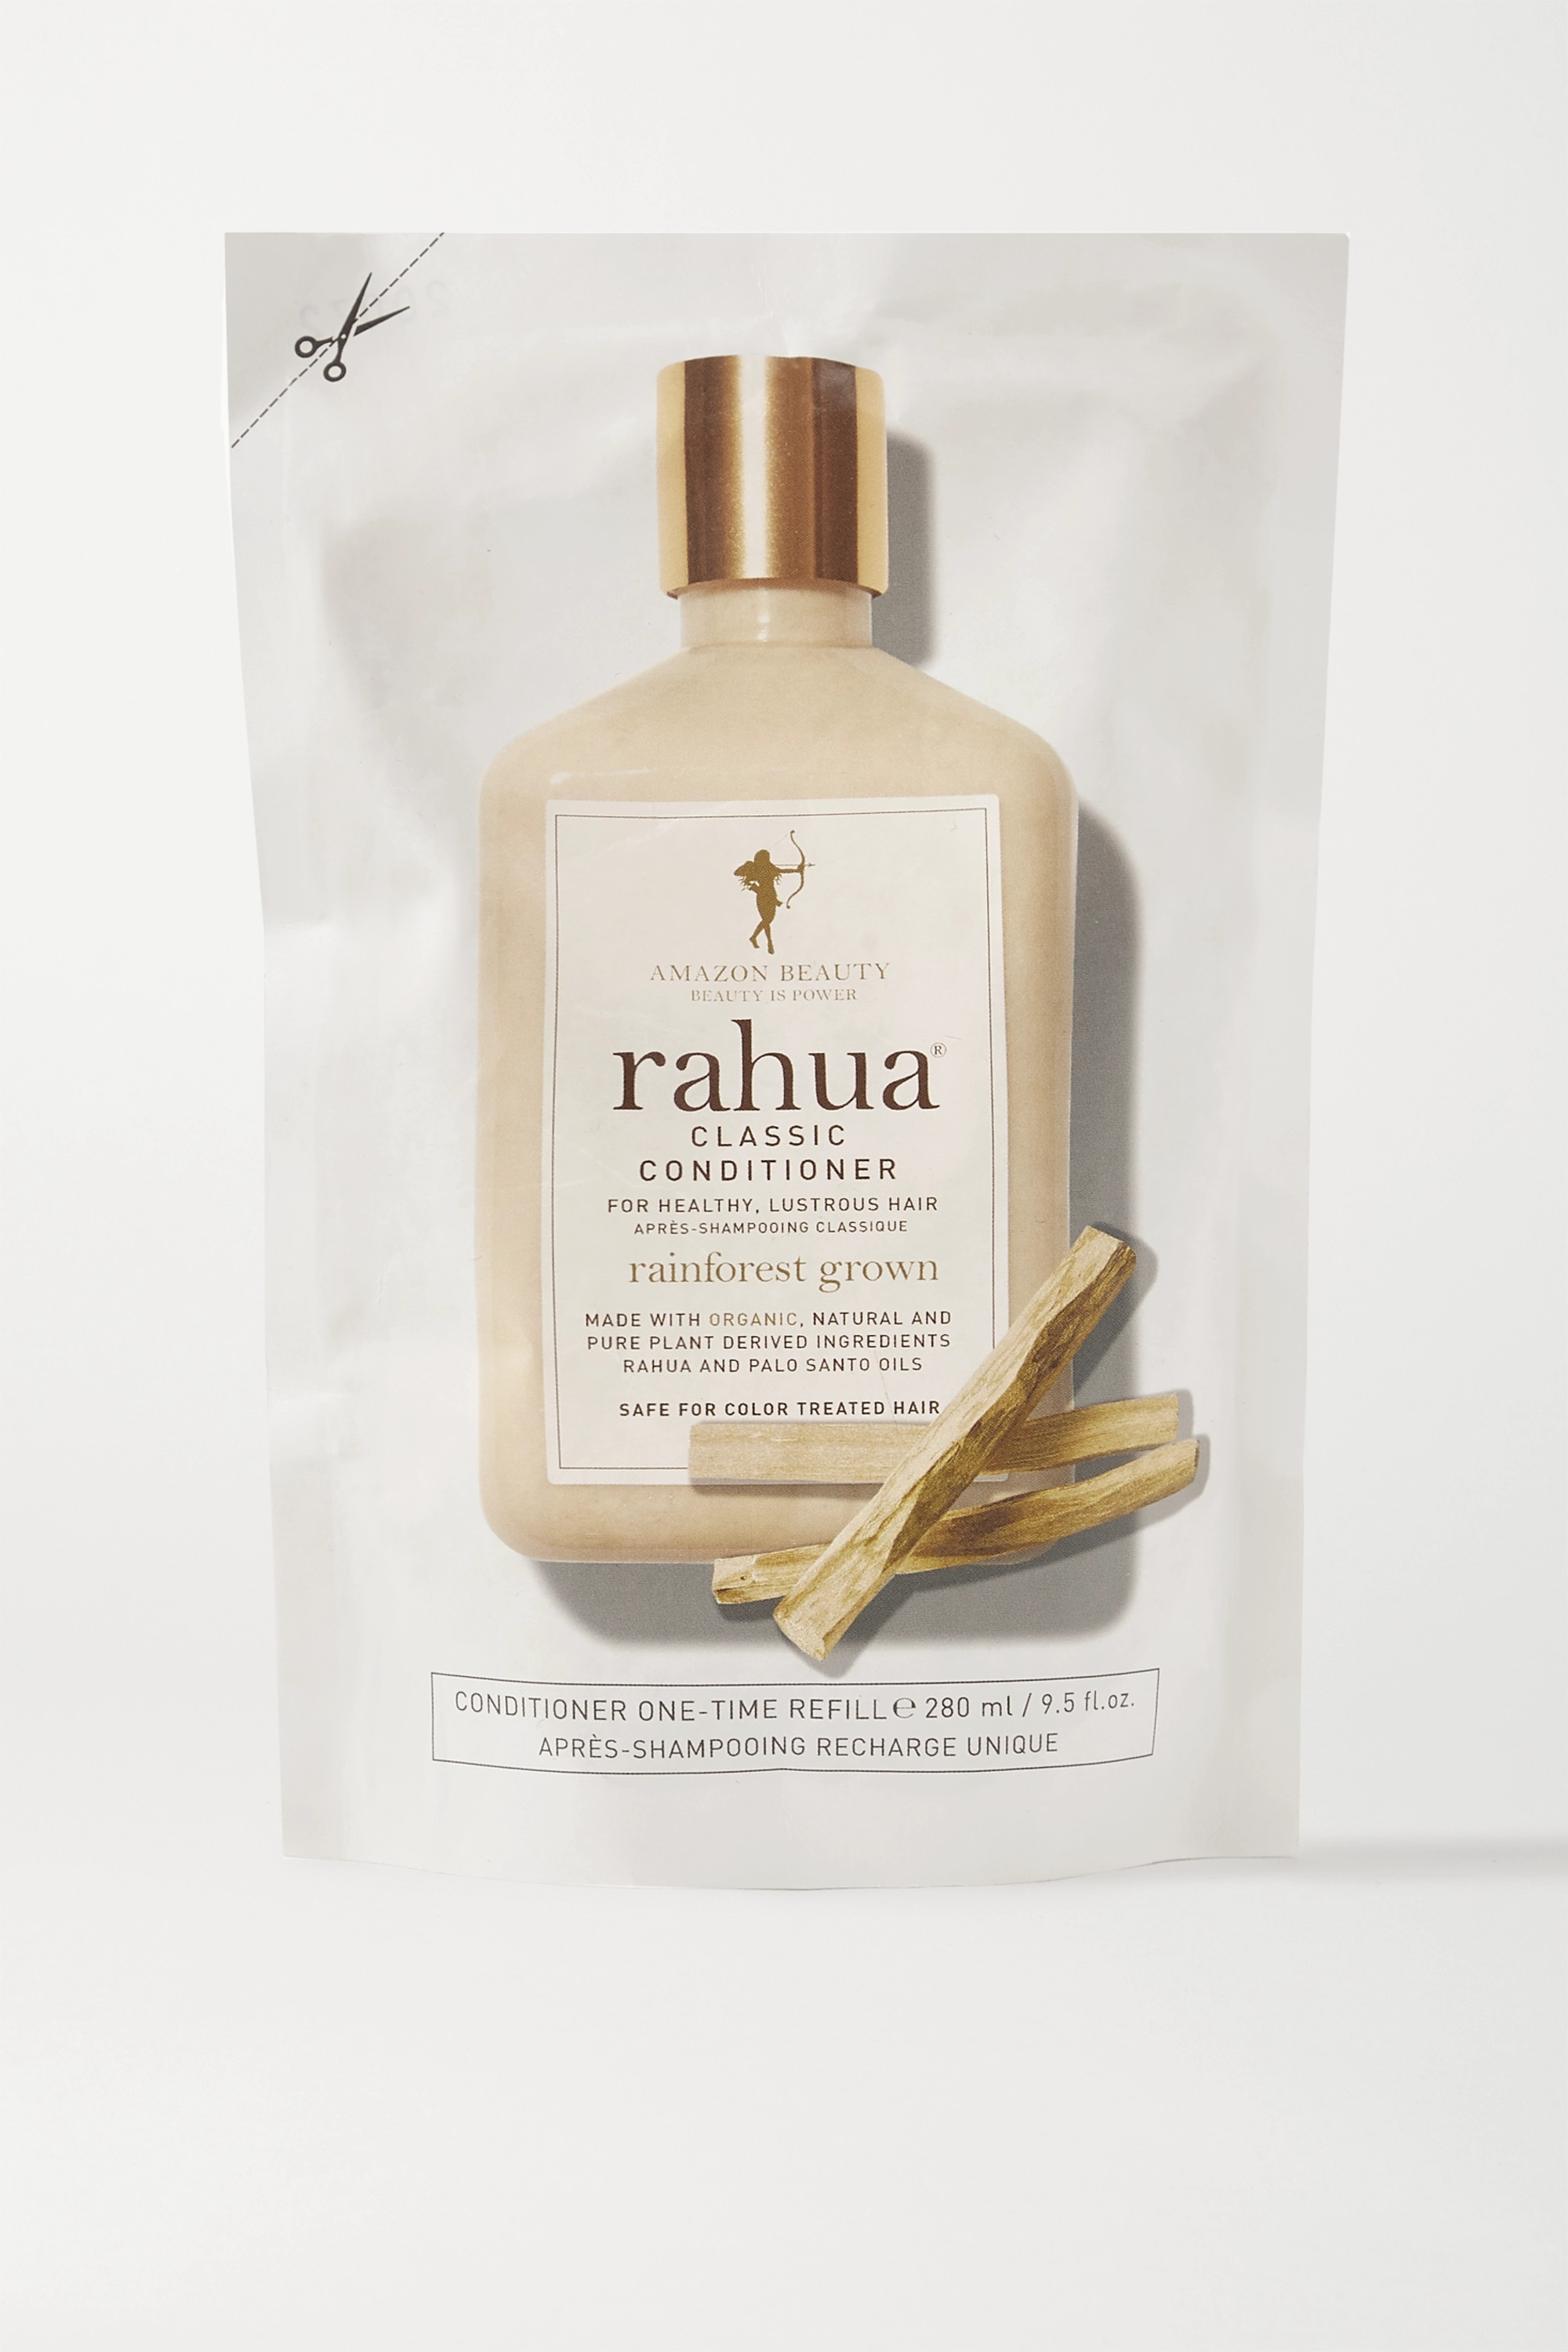 Rahua Classic Conditioner Refill (280ml) In Colorless